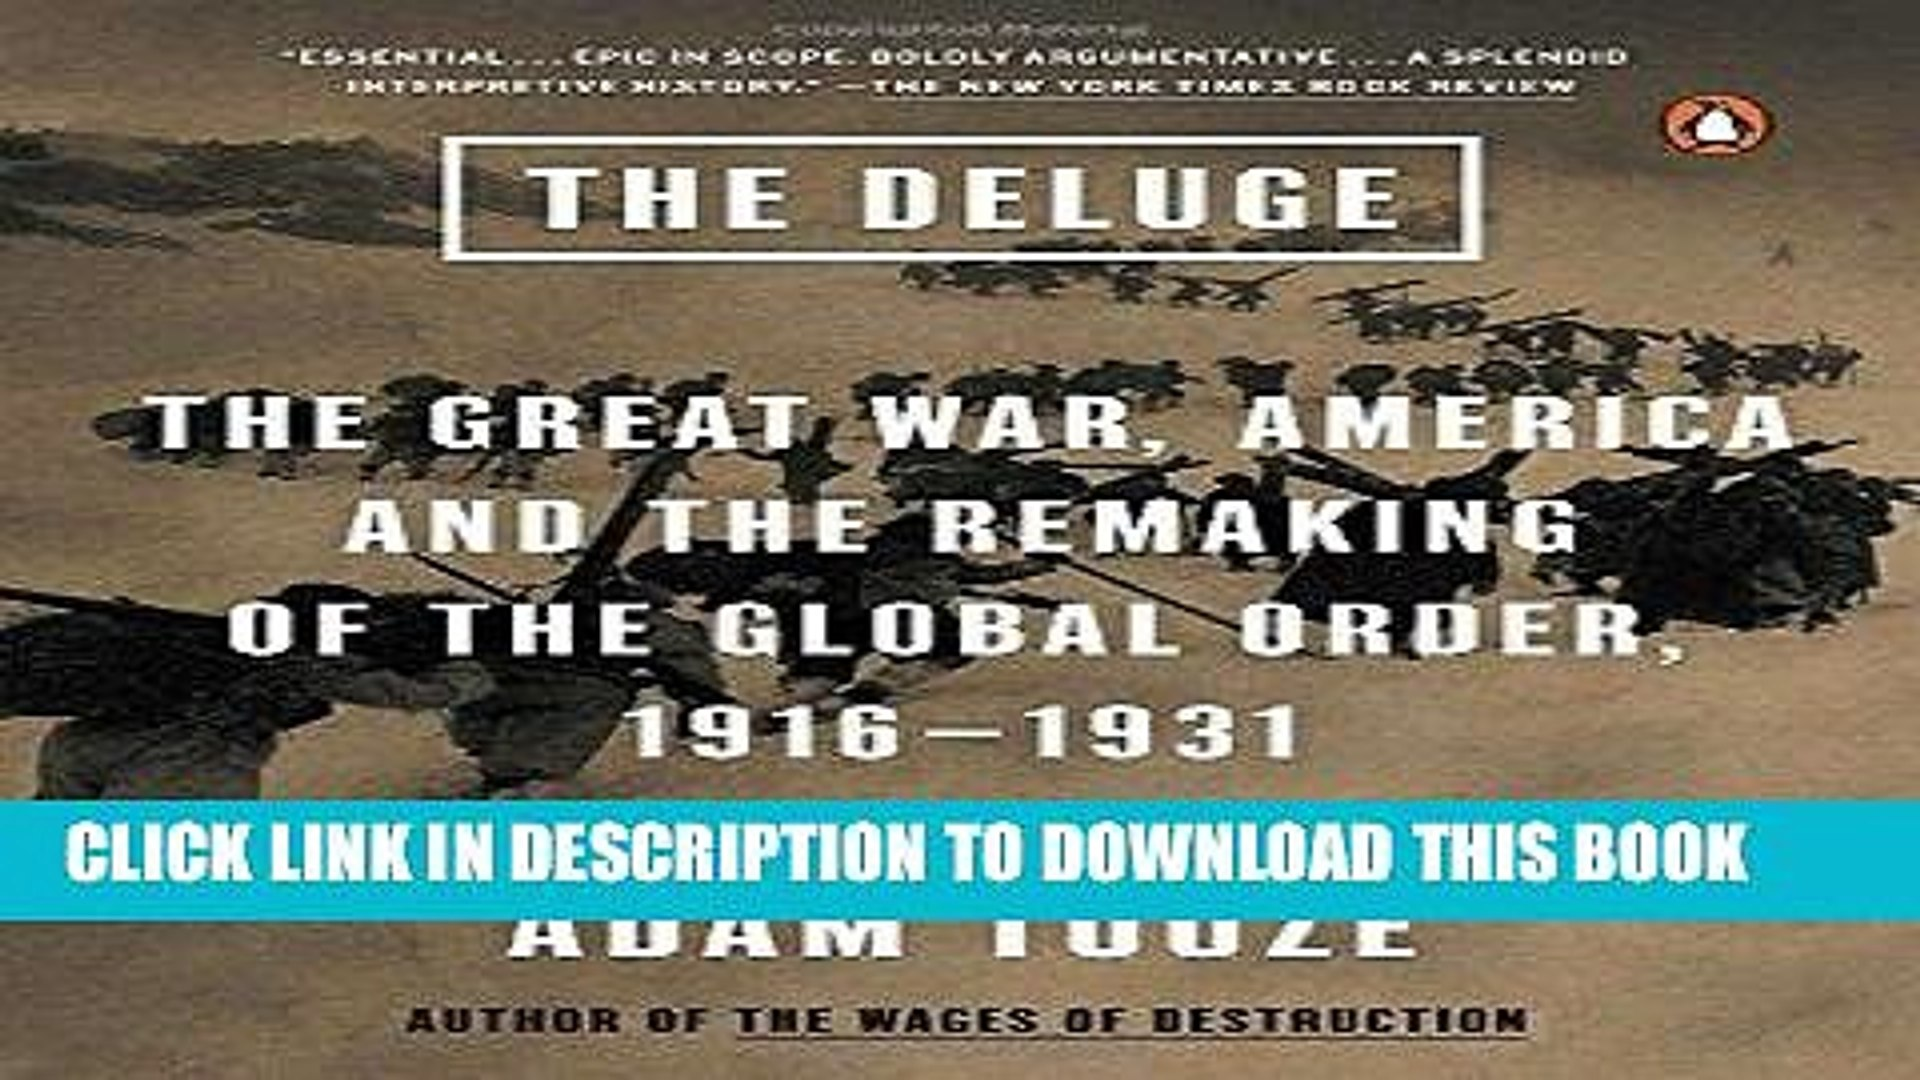 Best Seller The Deluge: The Great War, America and the Remaking of the Global Order, 1916-1931